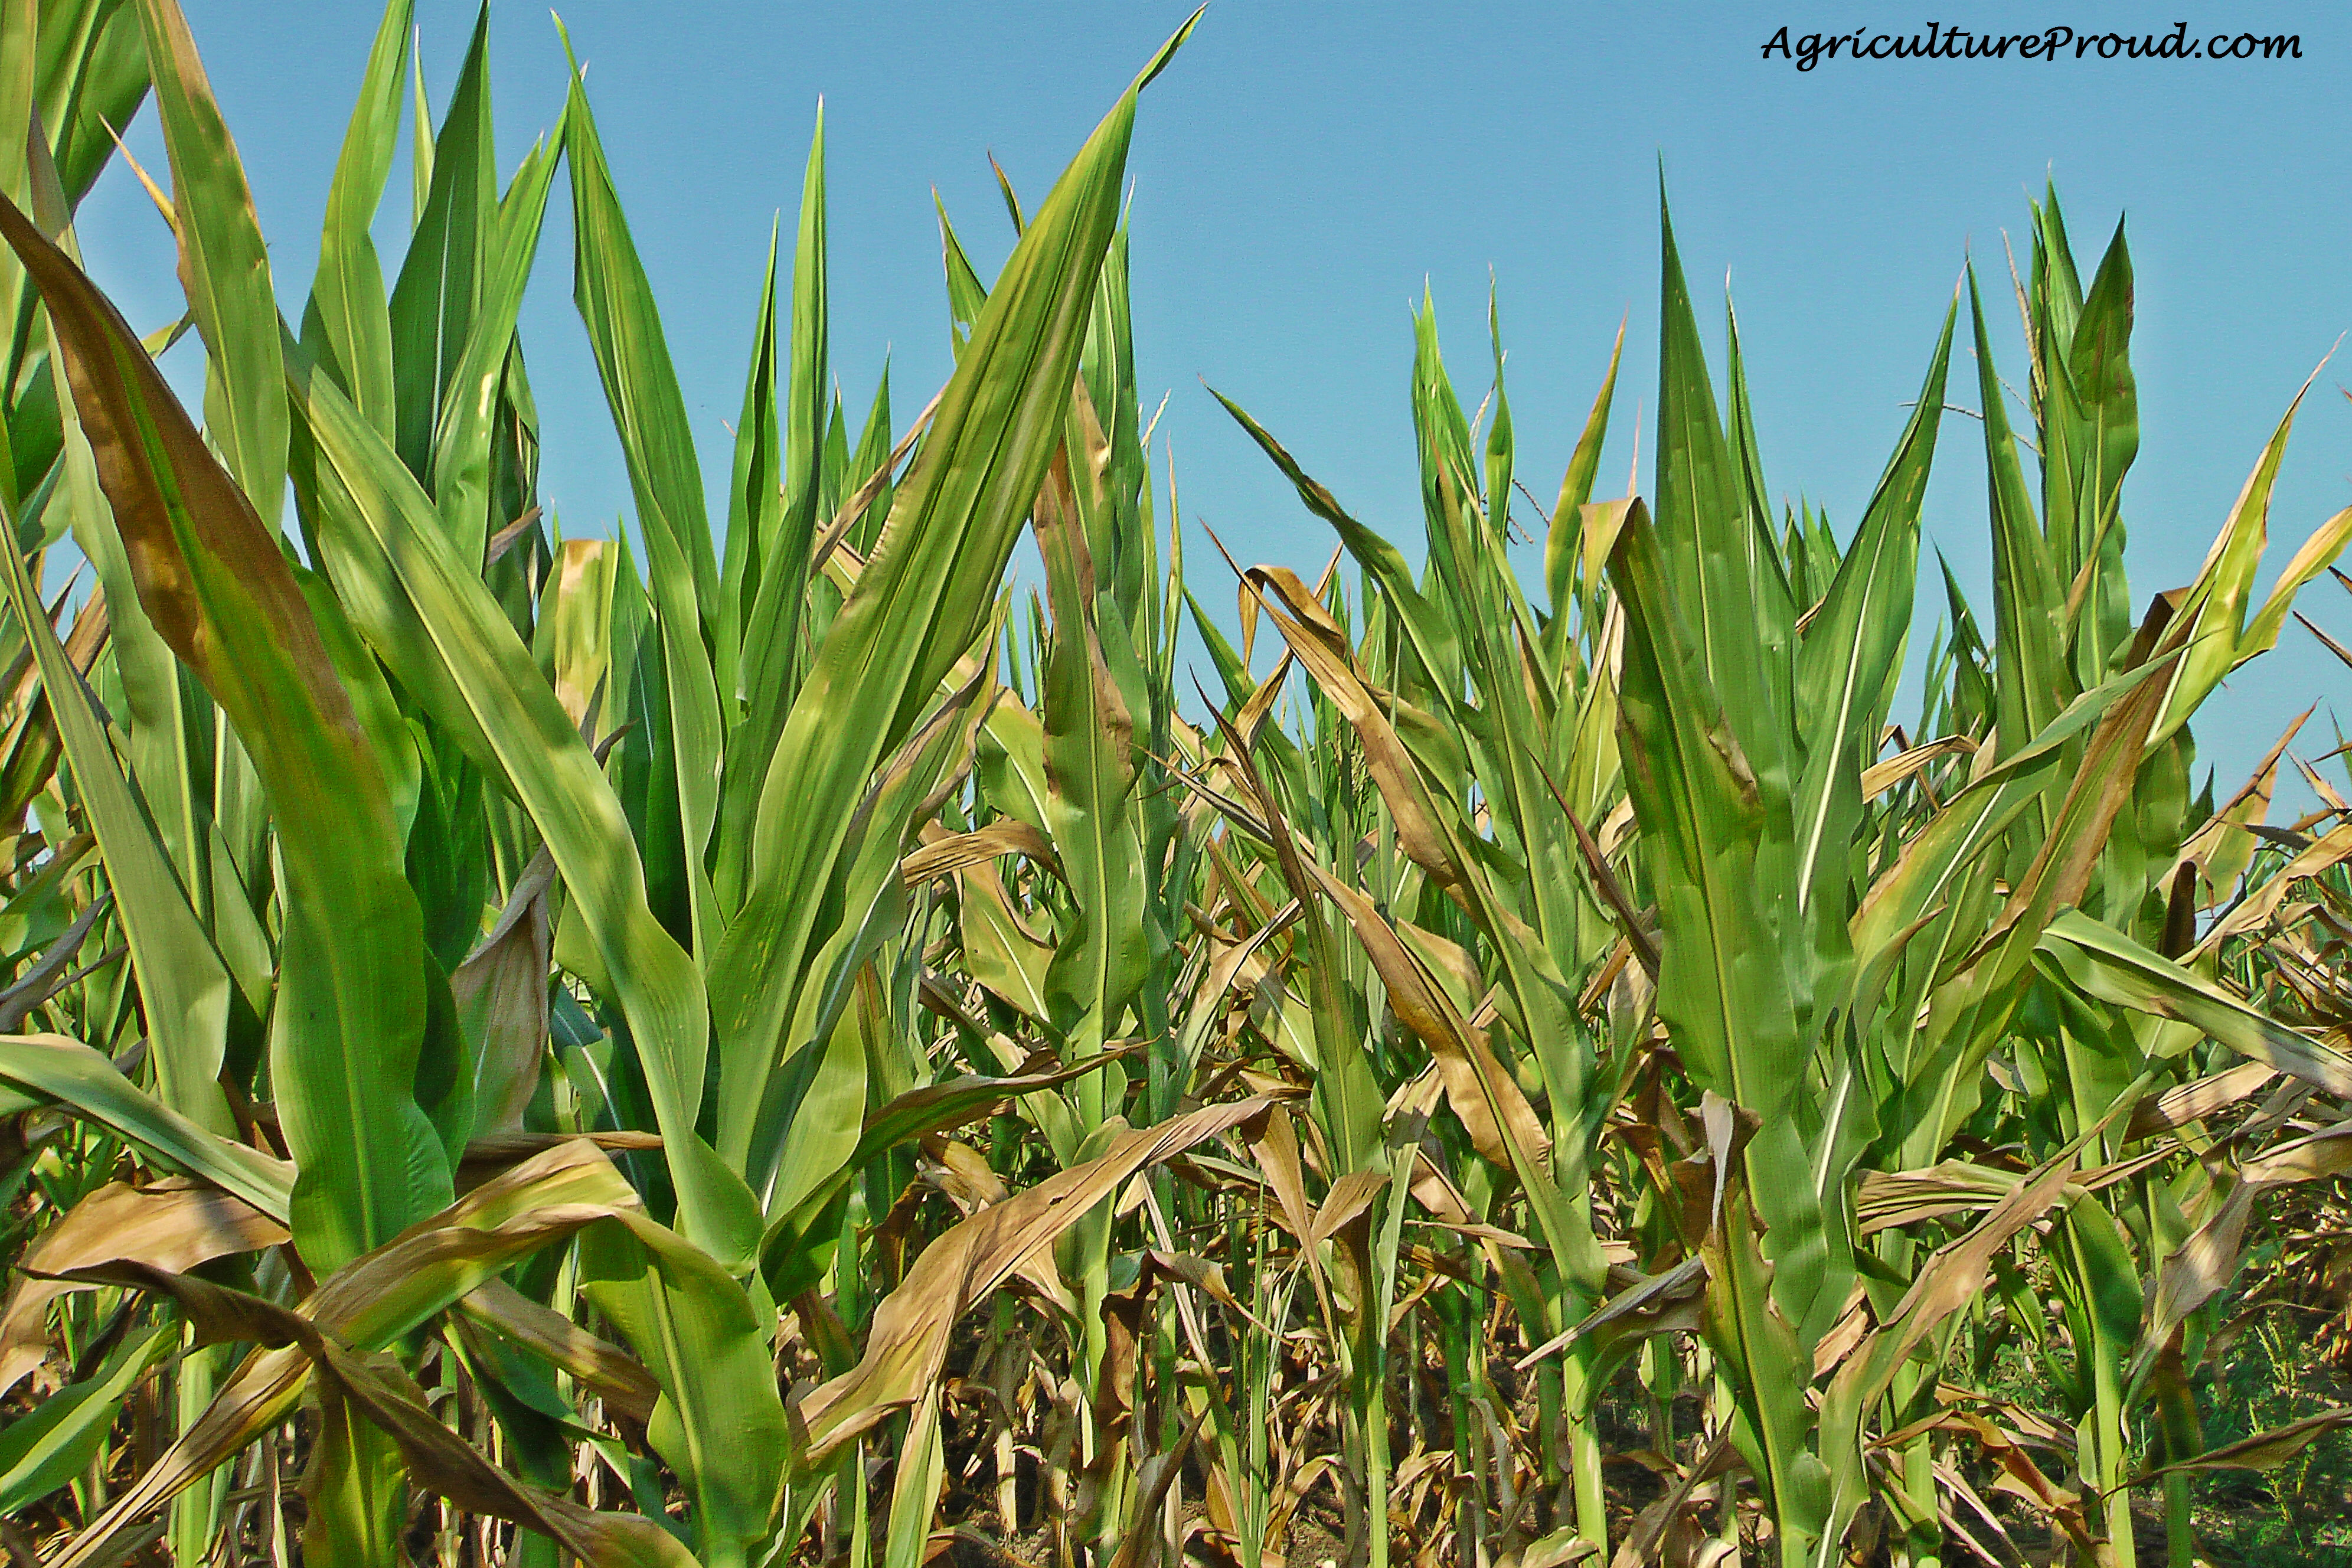 ask a farmer does feeding corn harm cattle u2013 agriculture proud